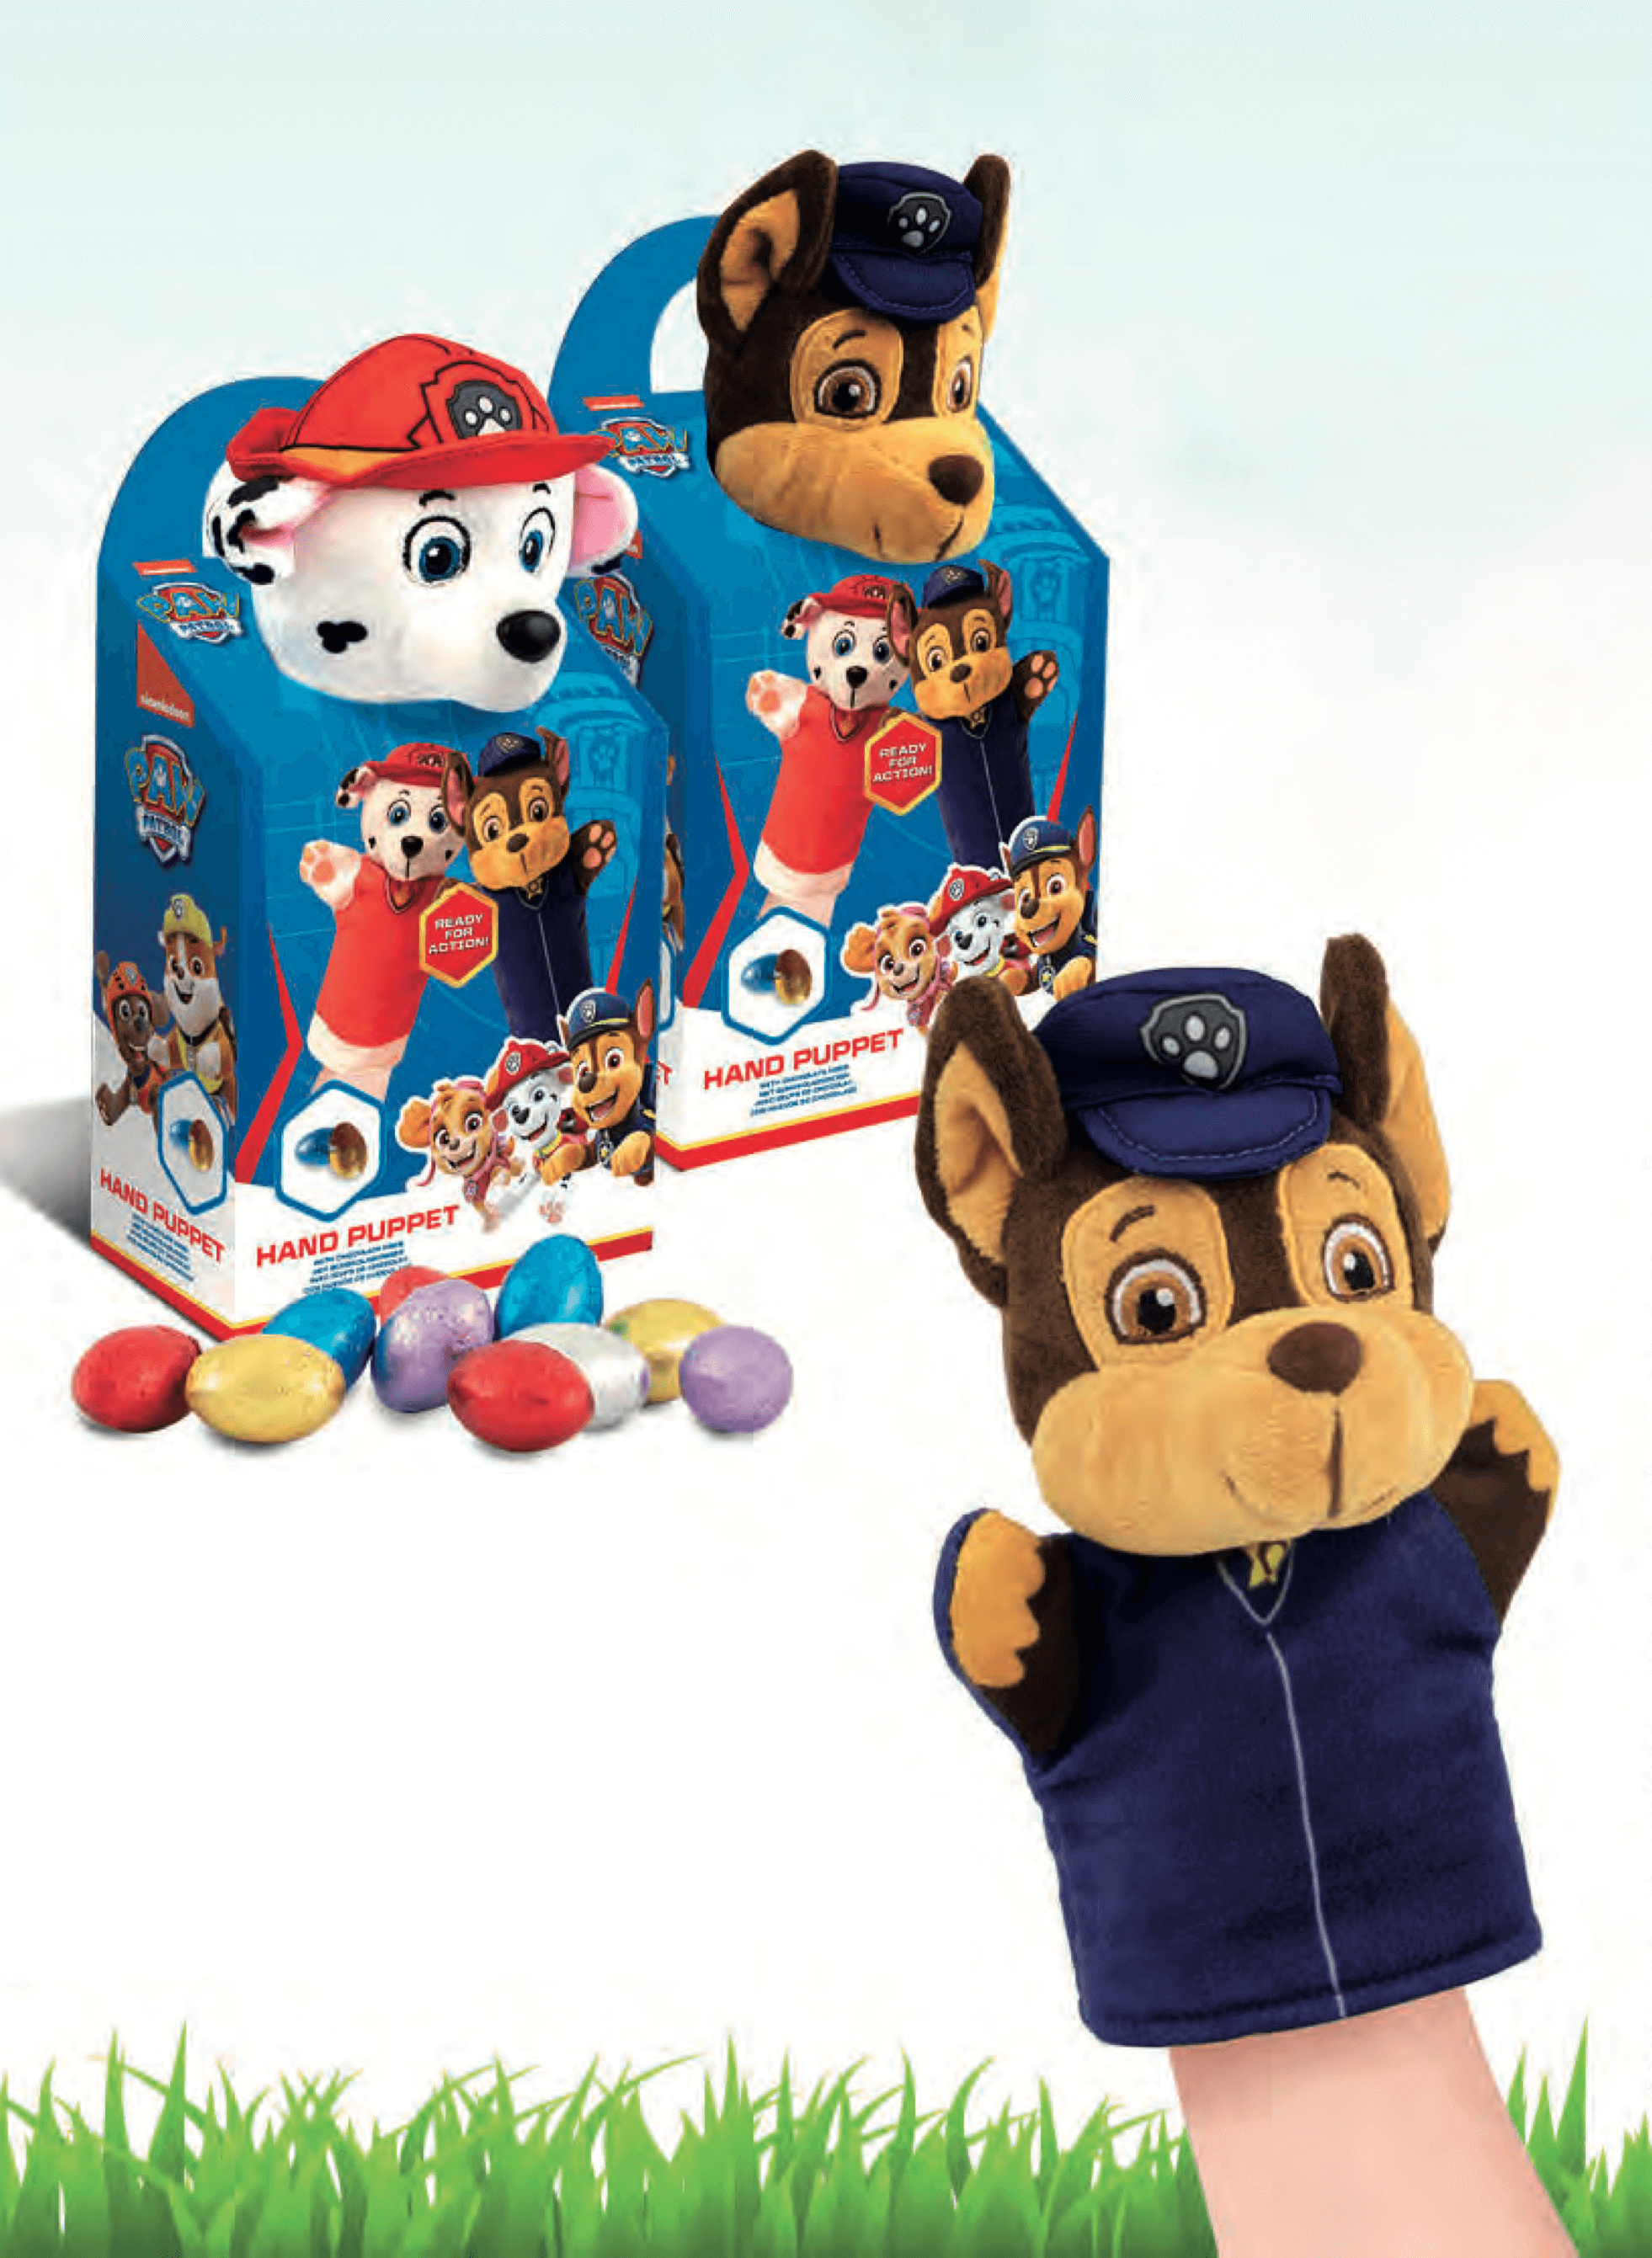 Paw Patrol Hand Puppet With Chocolate Eggs